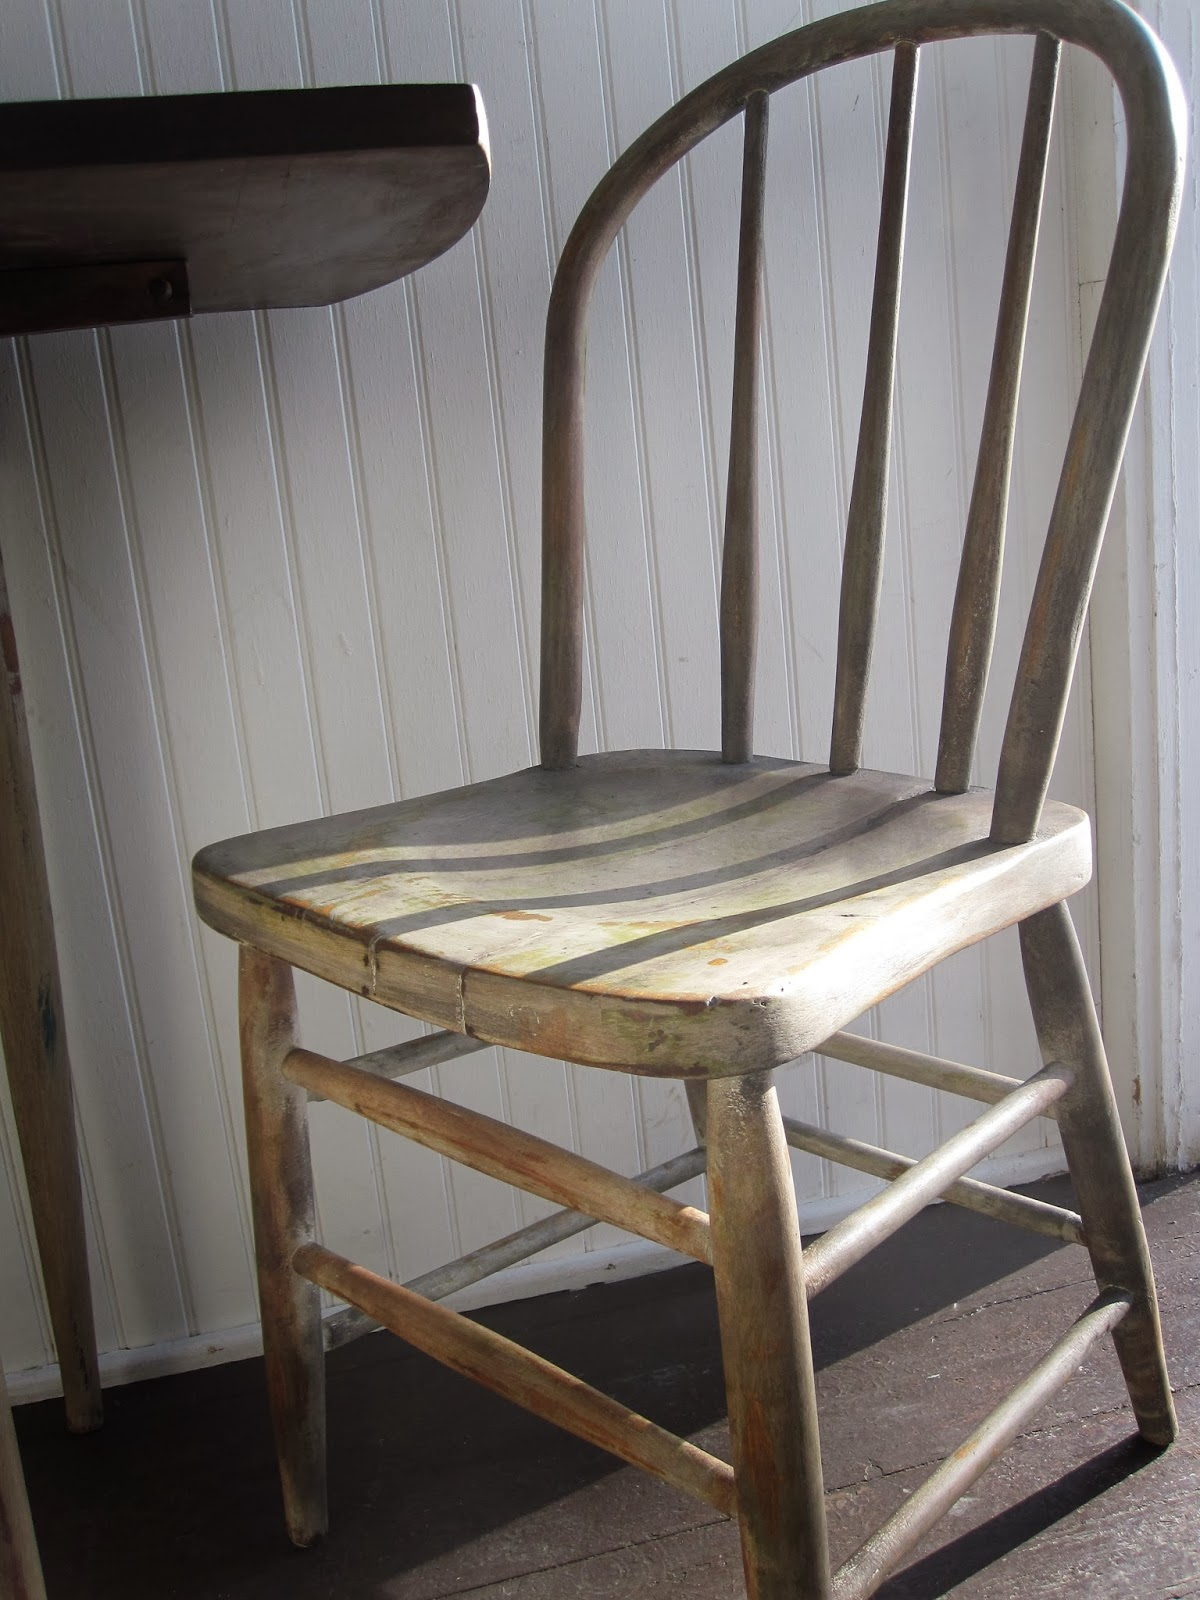 Chubby junk two person dining set dining table and chairs - Person dining table and chairs ...